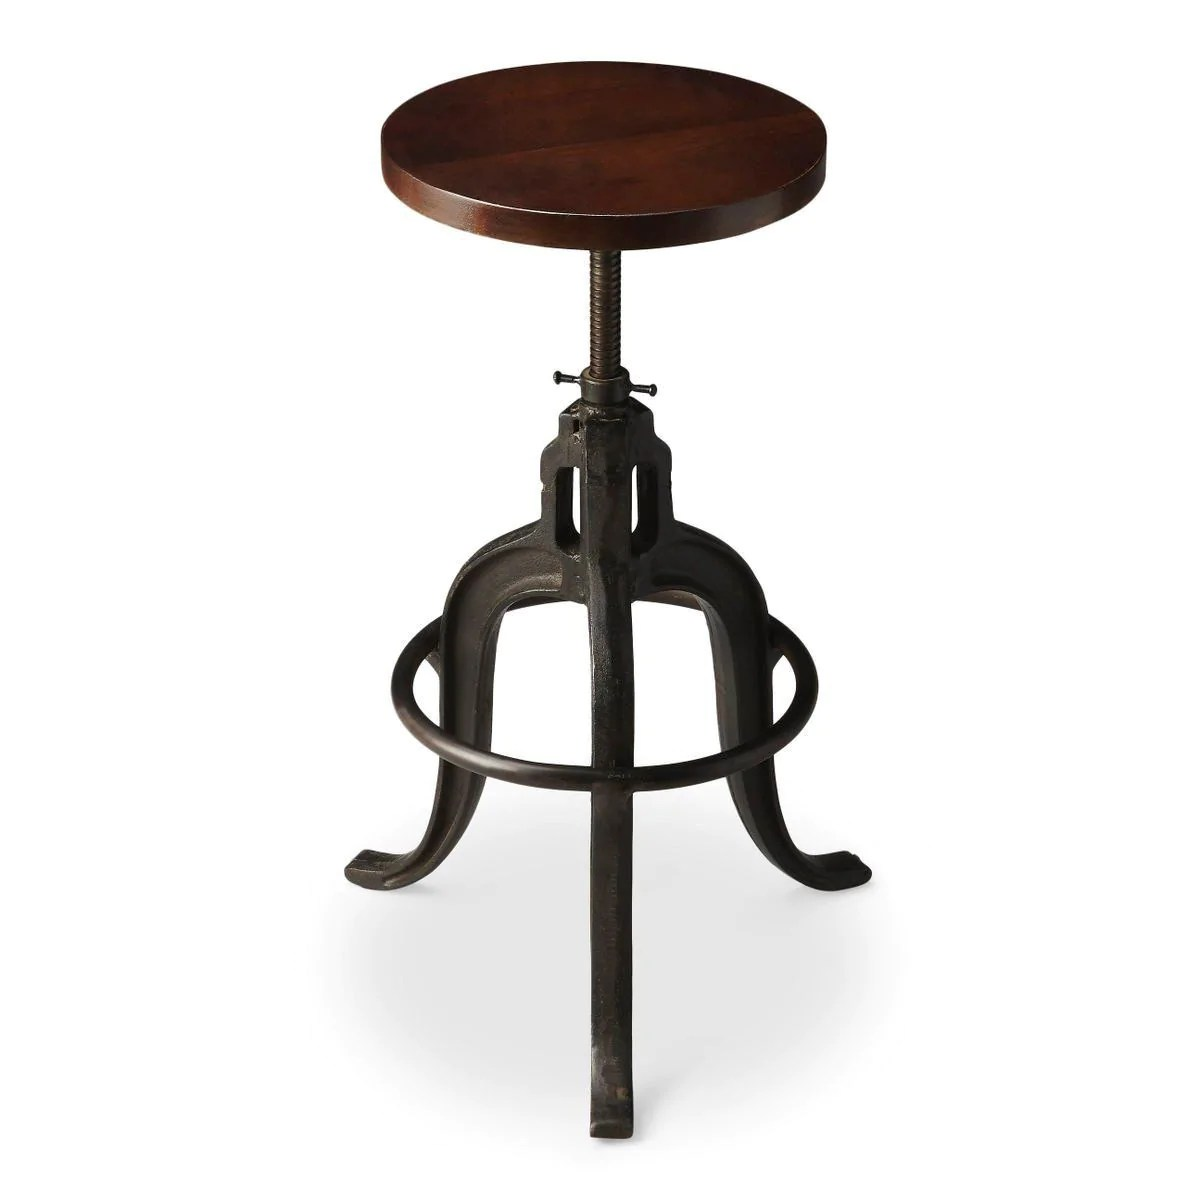 revolving chair colour fishing with headrest gladney transitional round bar stool multi color